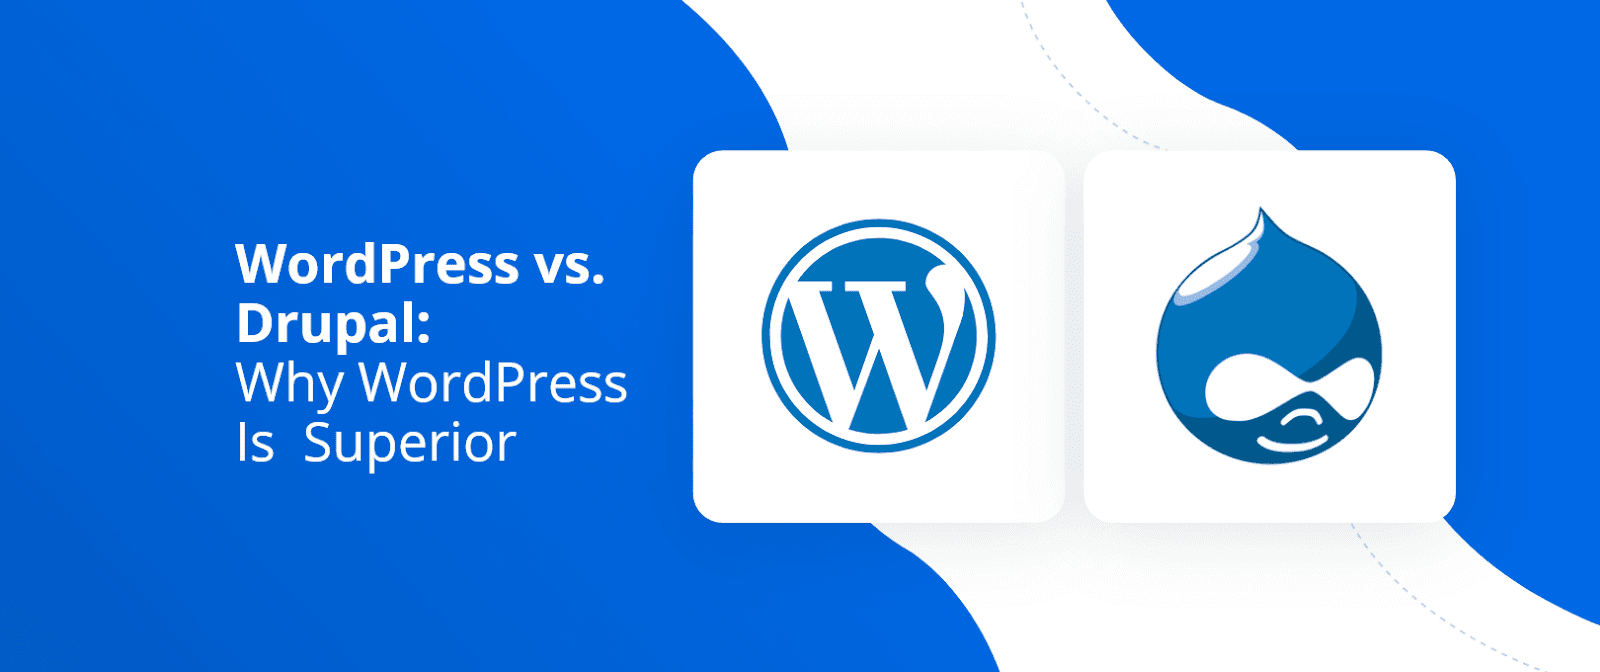 WordPress vs. Drupal Why WordPress Is Superior